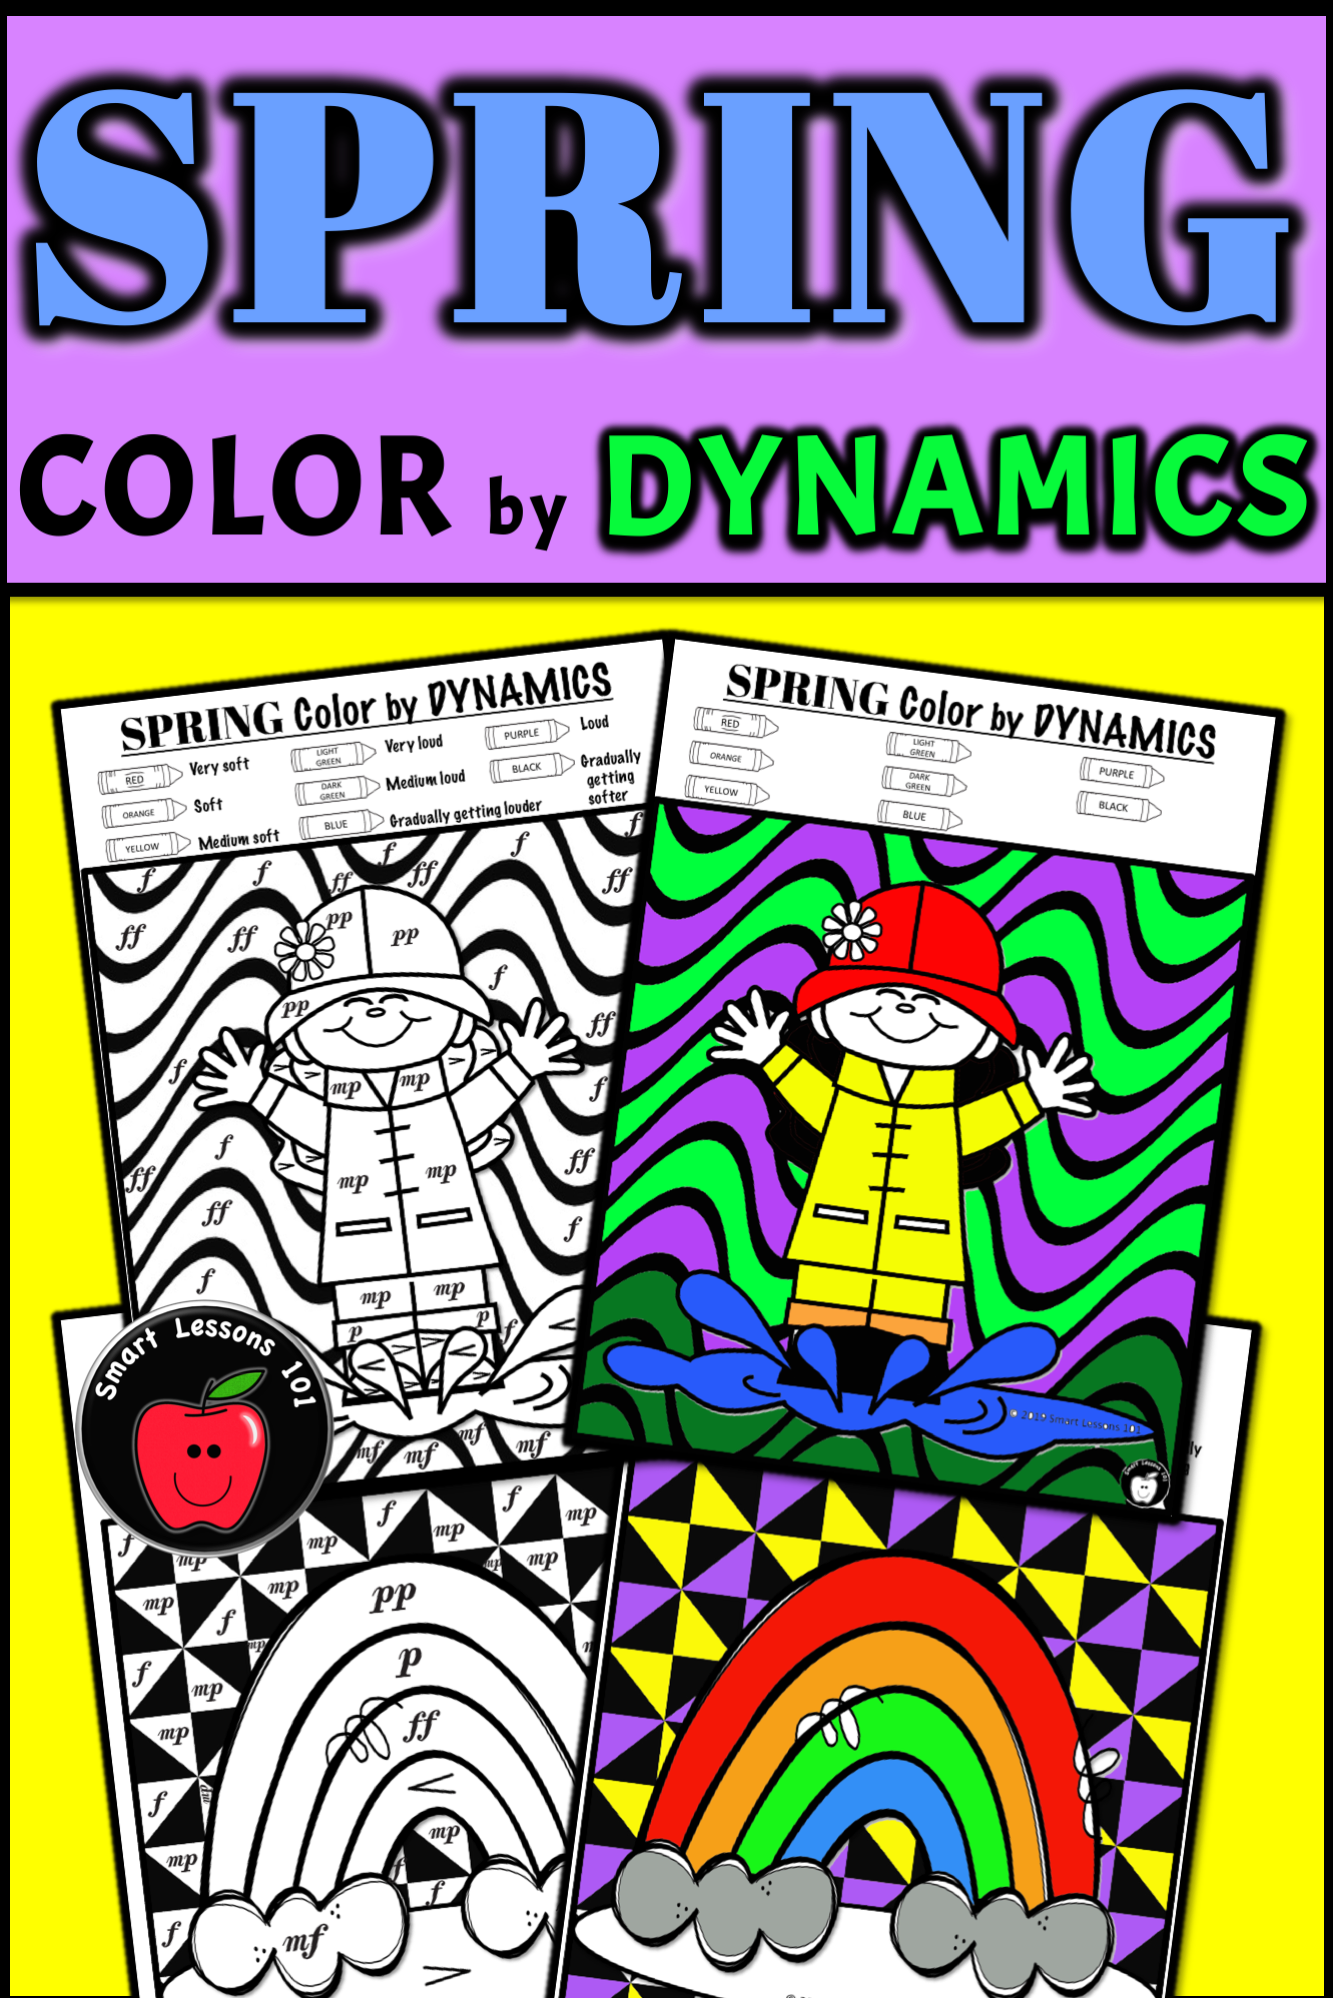 Fun Music Coloring Pages For Kids These Music Coloring